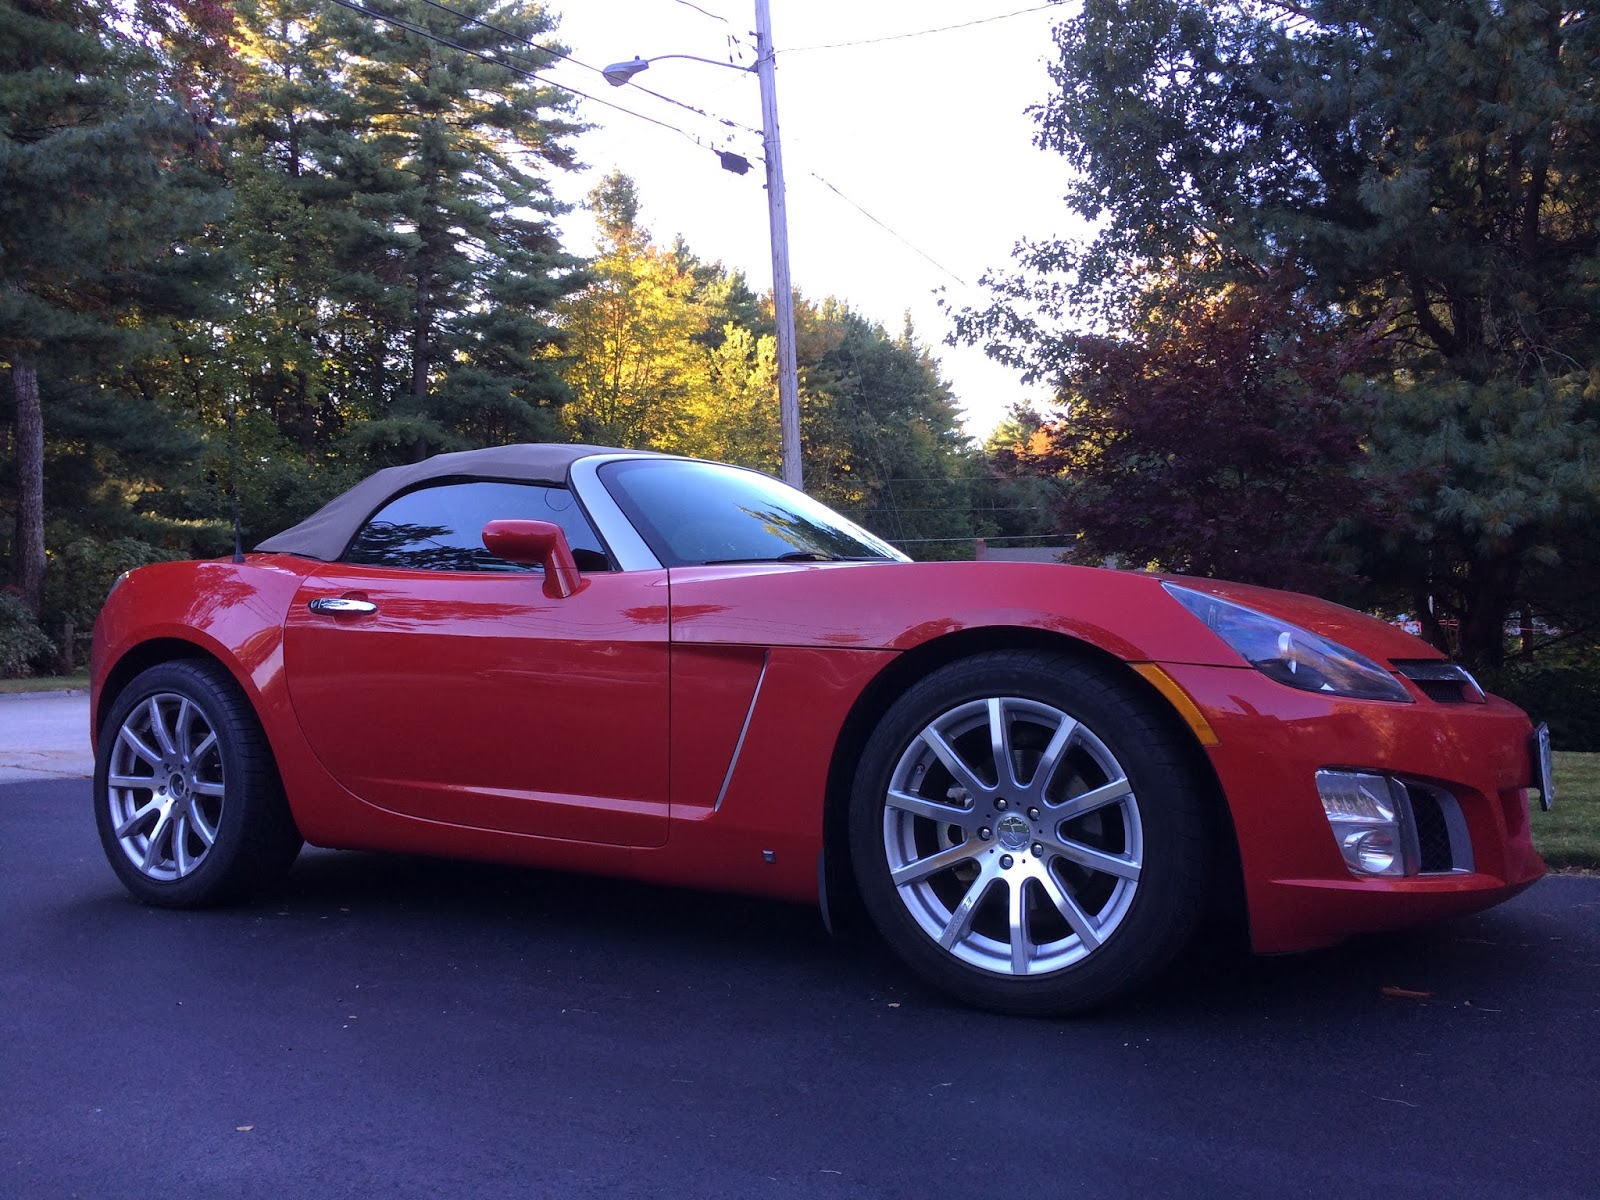 Find This 2009 Saturn Sky Redline For Sale In New Hampshire For $17,000 Or  Trade For STI Via NASIOC Forums.